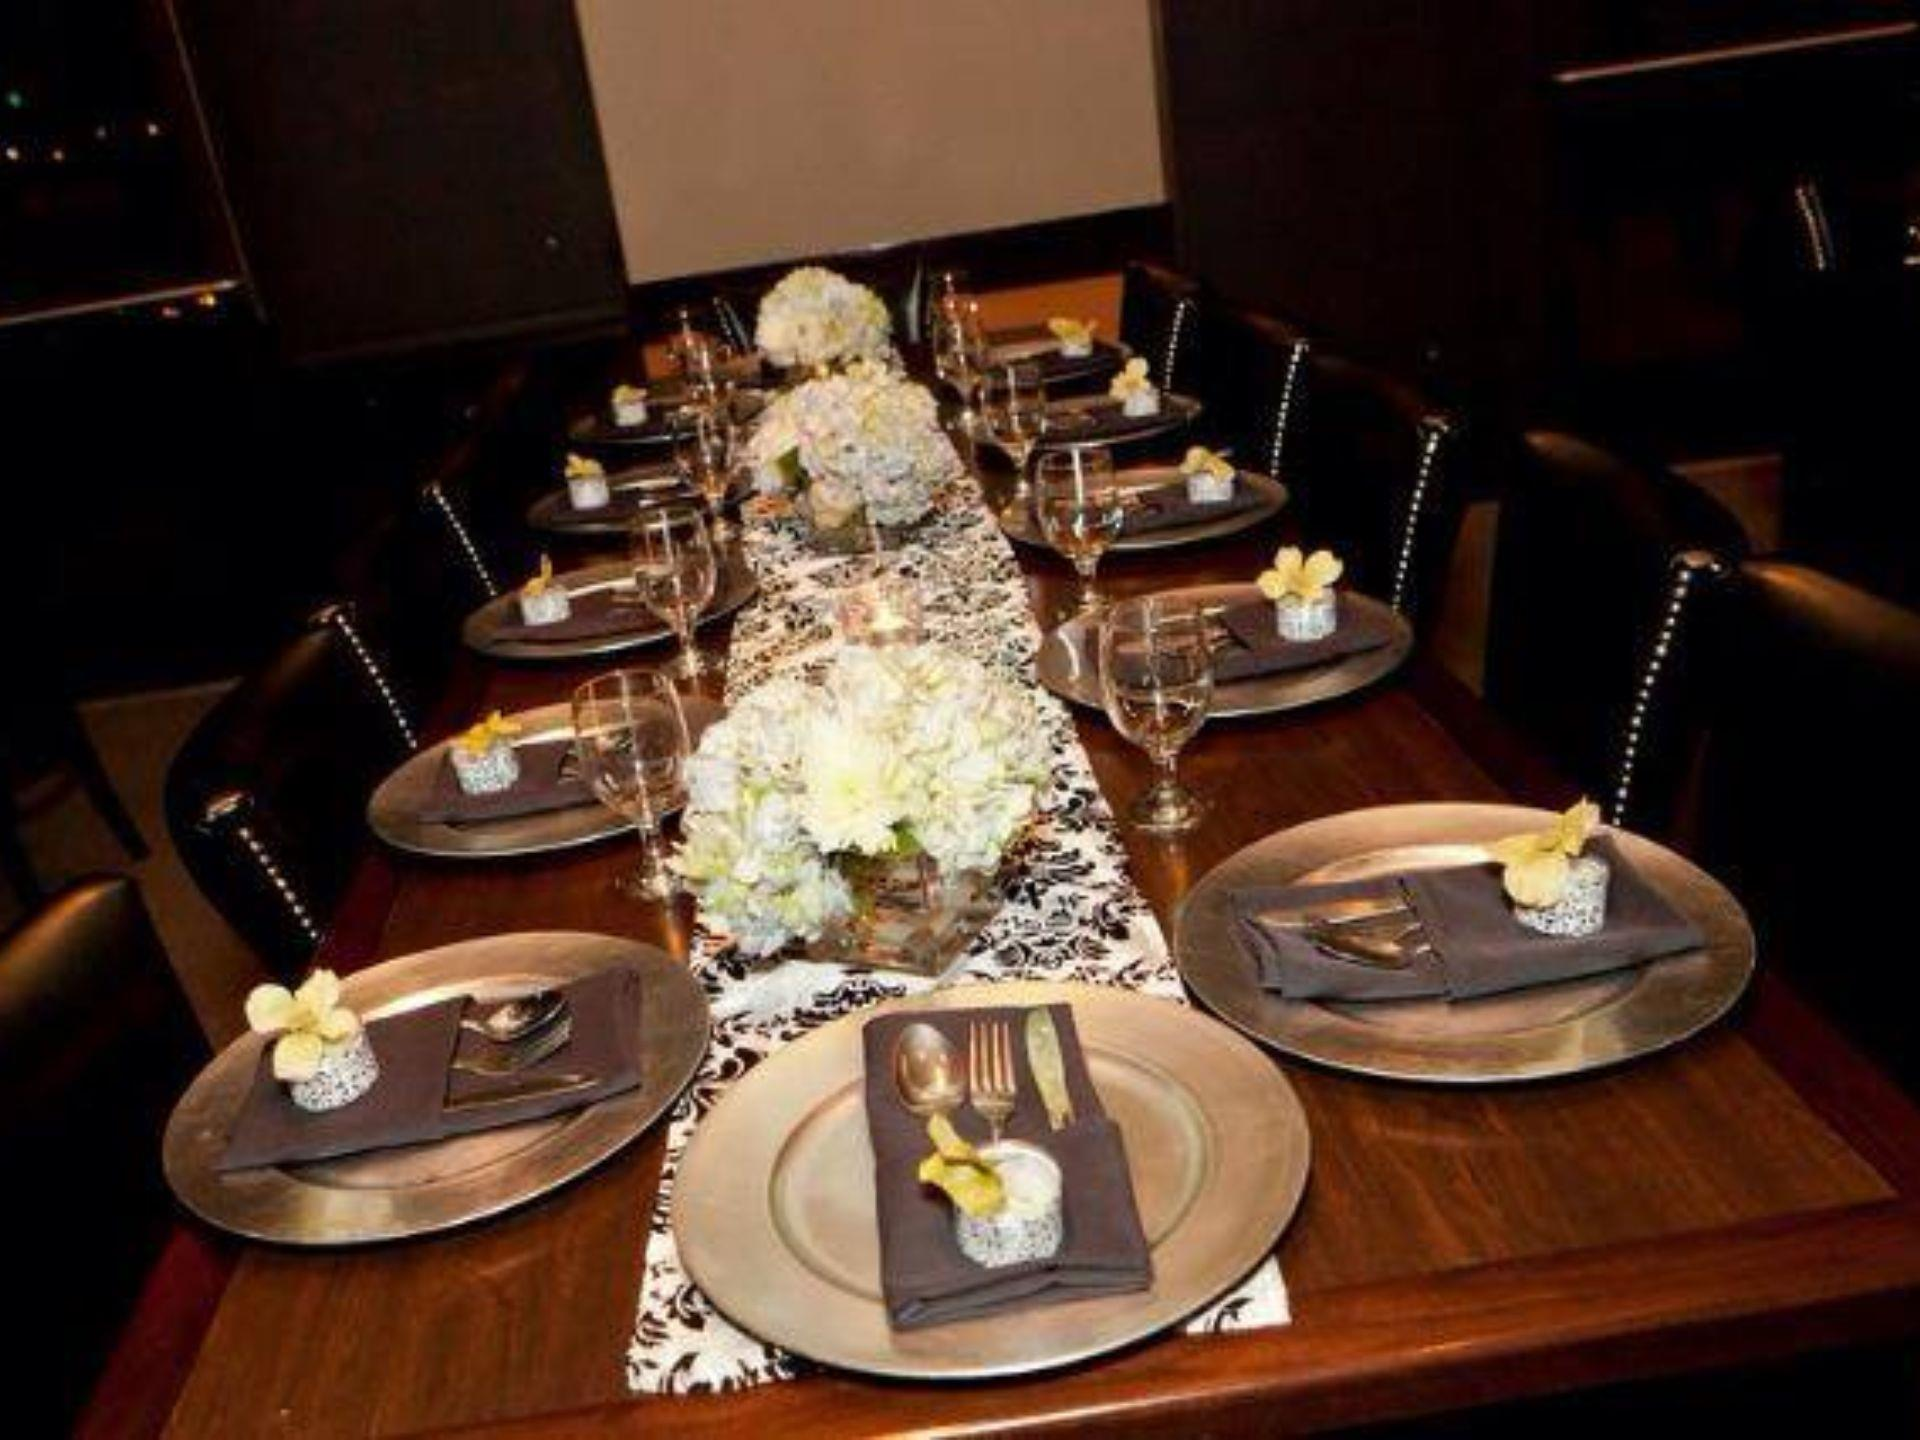 Table setting with plates, glasses and silverware